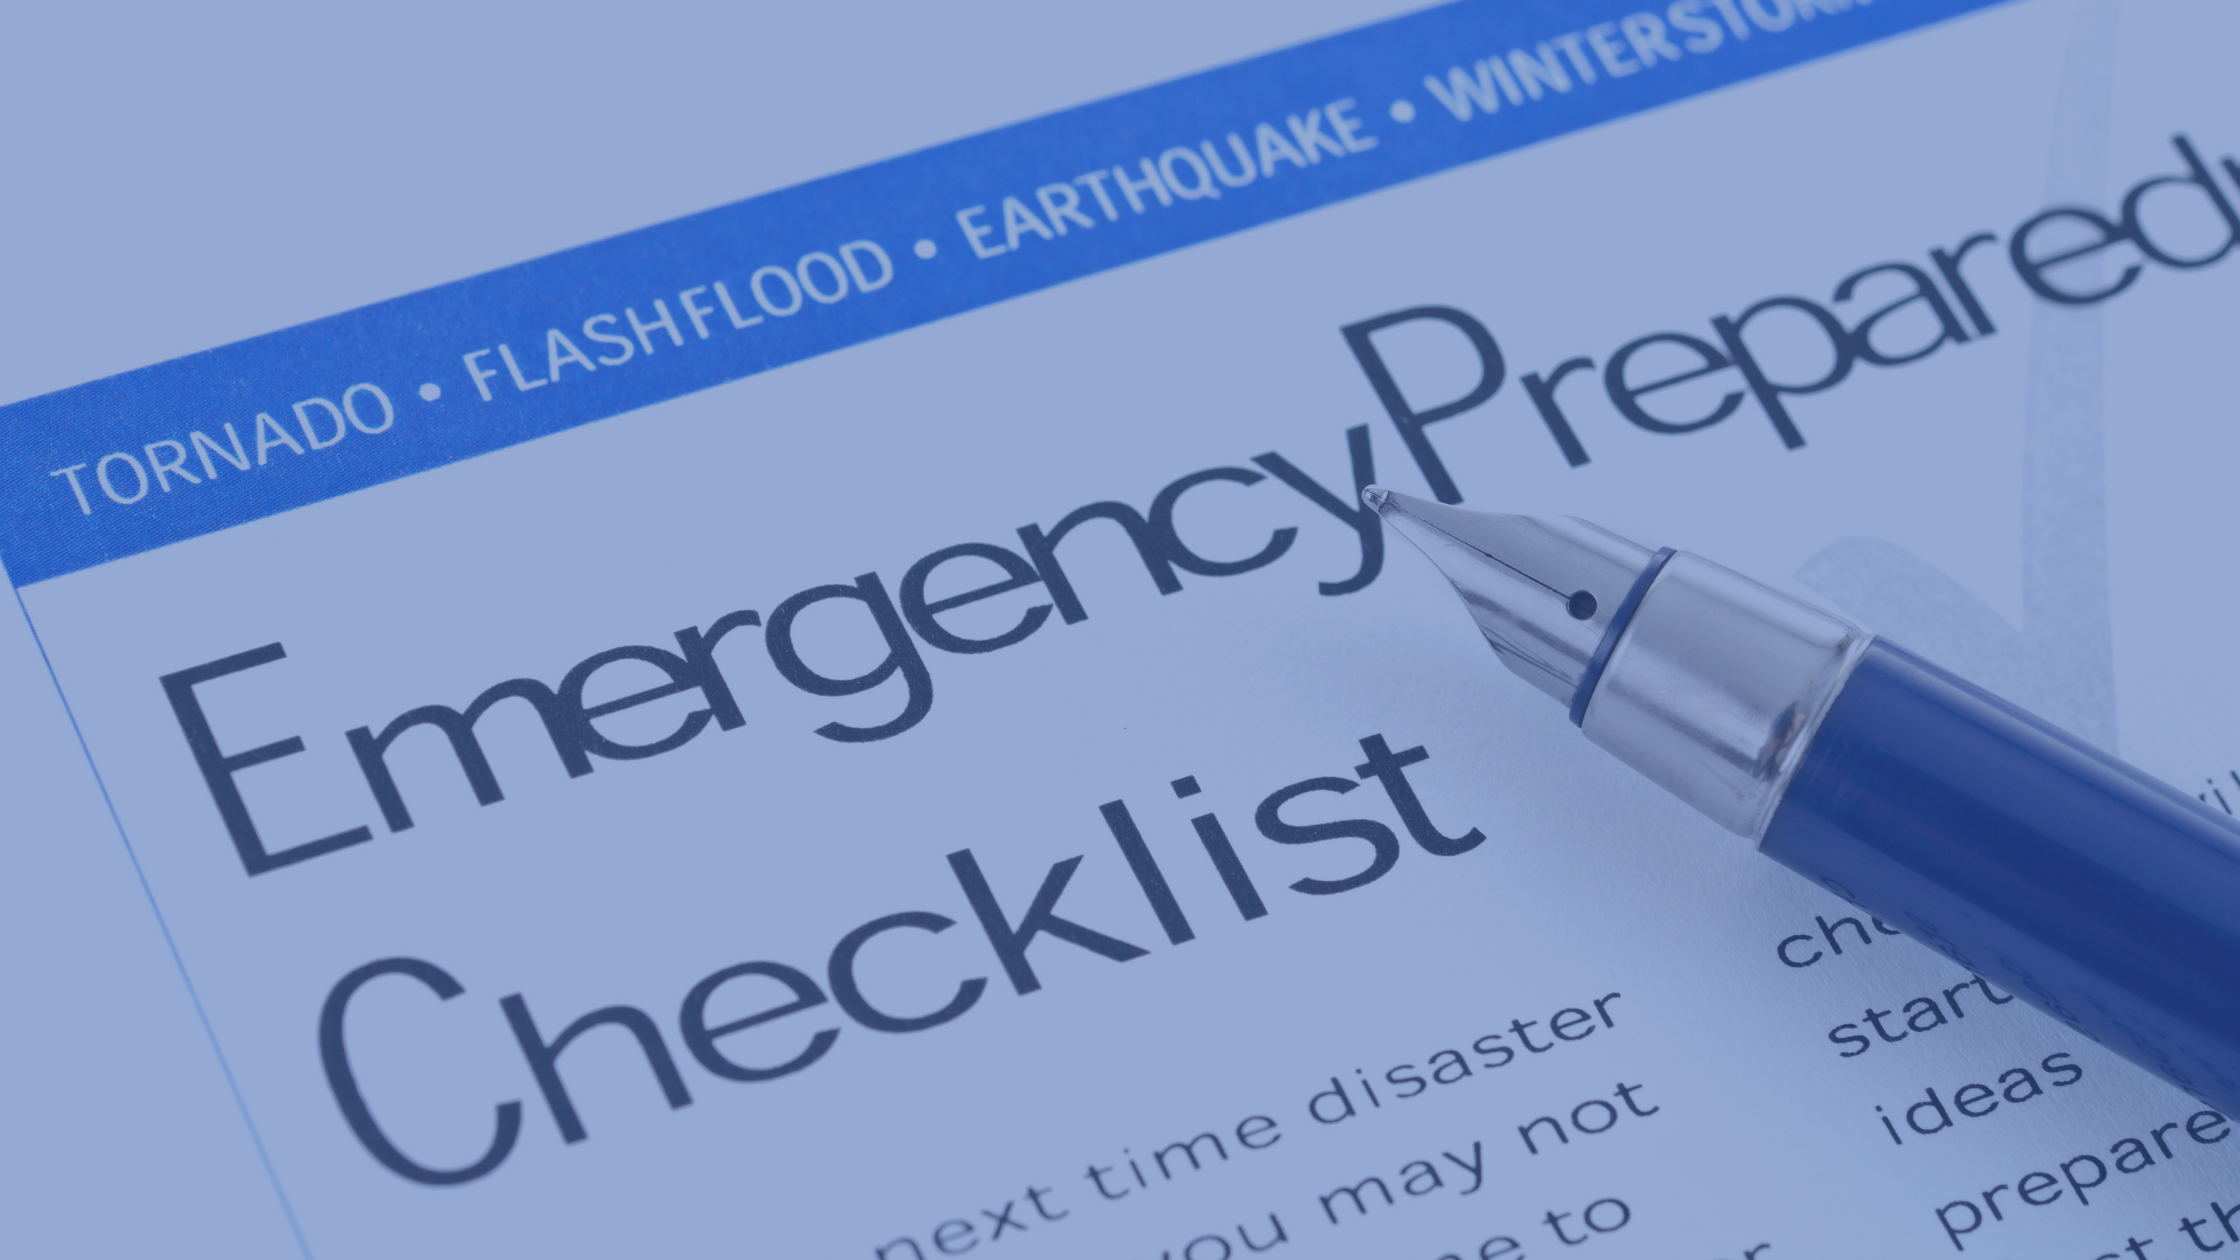 National Preparedness Month: How to Prepare for a Disaster and Communicate in the Office